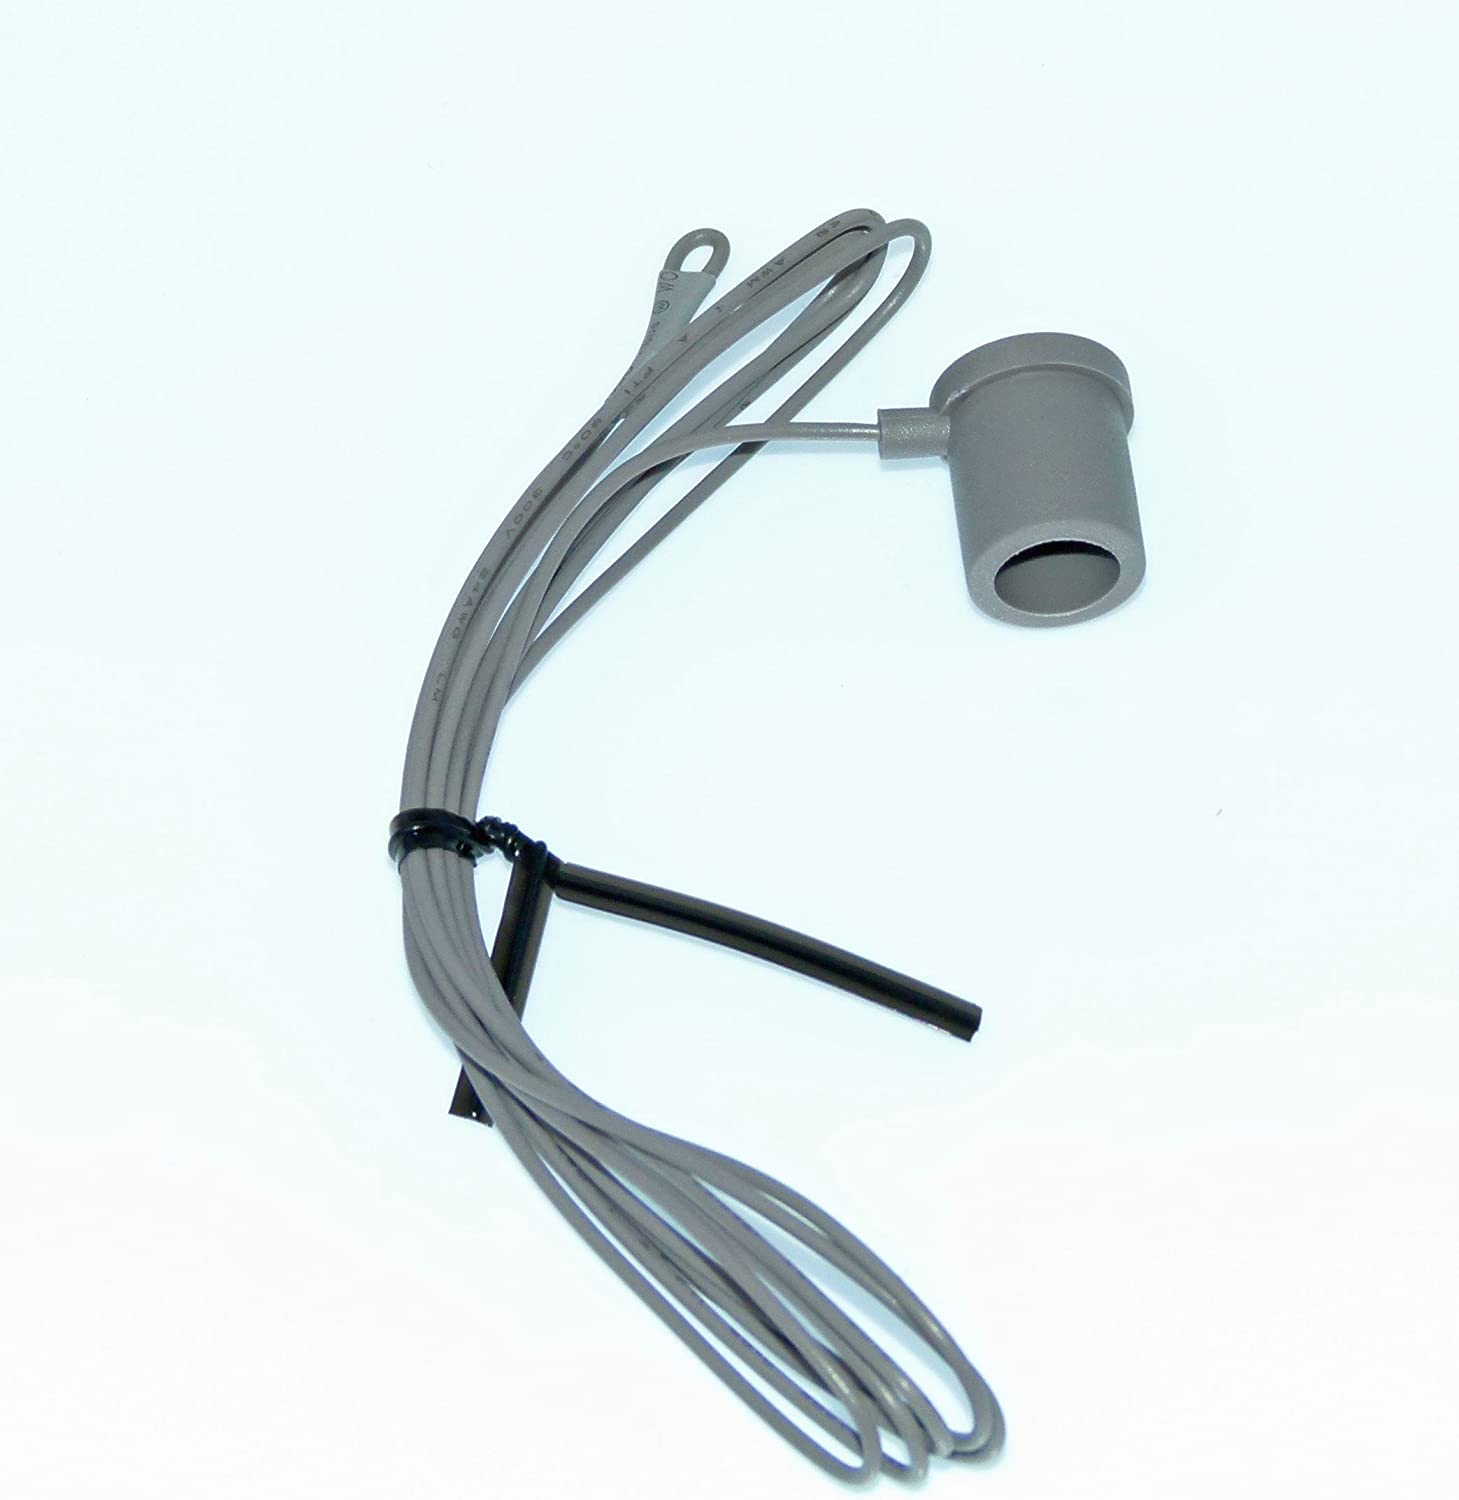 RX-777 RX777 RX-797 OEM Yamaha FM Antenna Originally Shipped With: RS700 RX797 R-S700